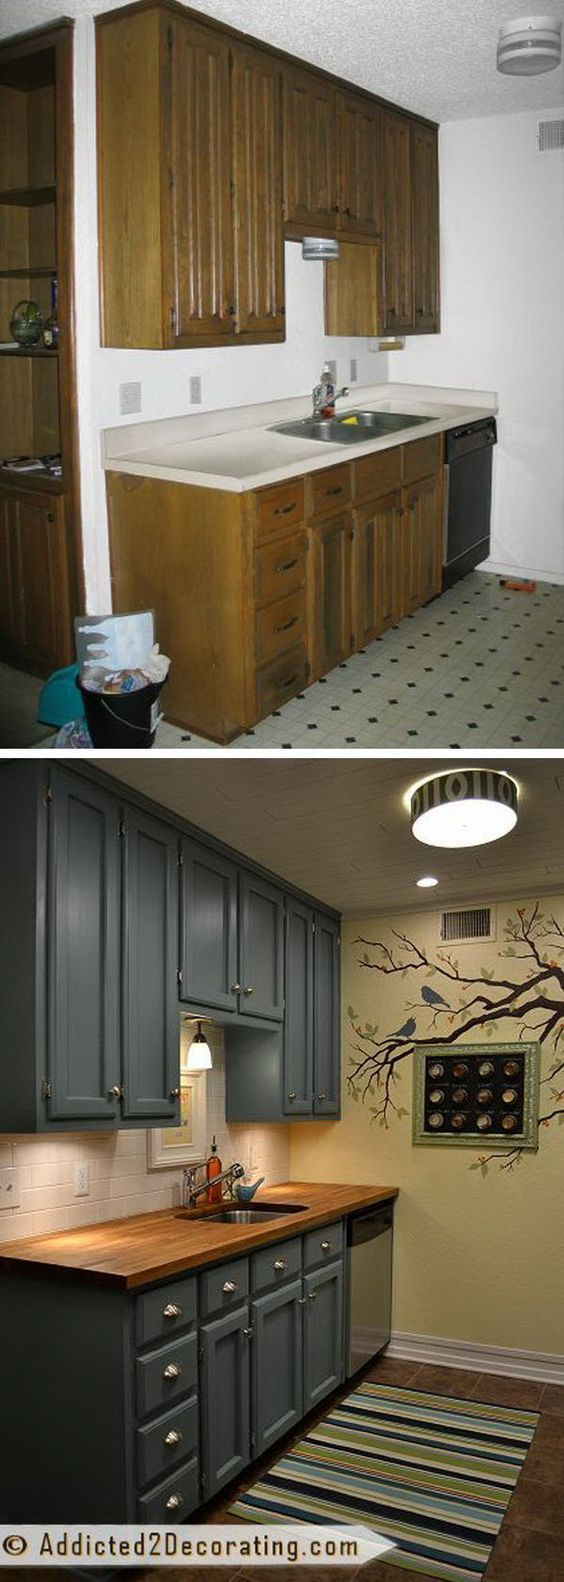 Before and after teeny tiny kitchen cheap makeover what an amazing